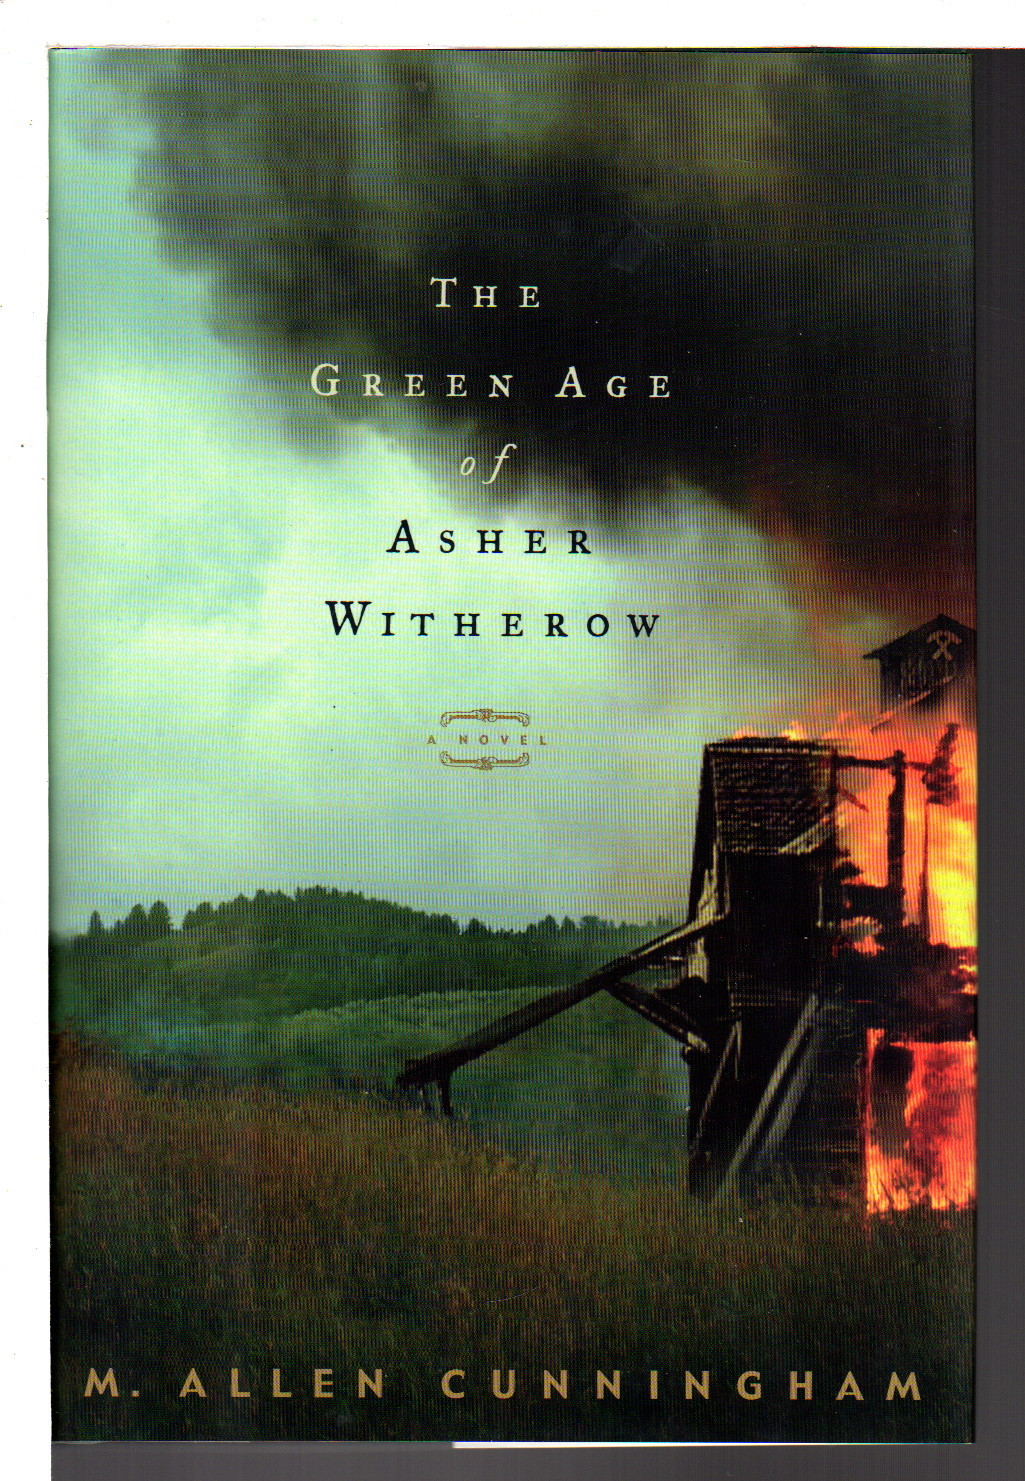 CUNNINGHAM, M. ALLEN. - THE GREEN AGE OF ASHER WITHEROW.